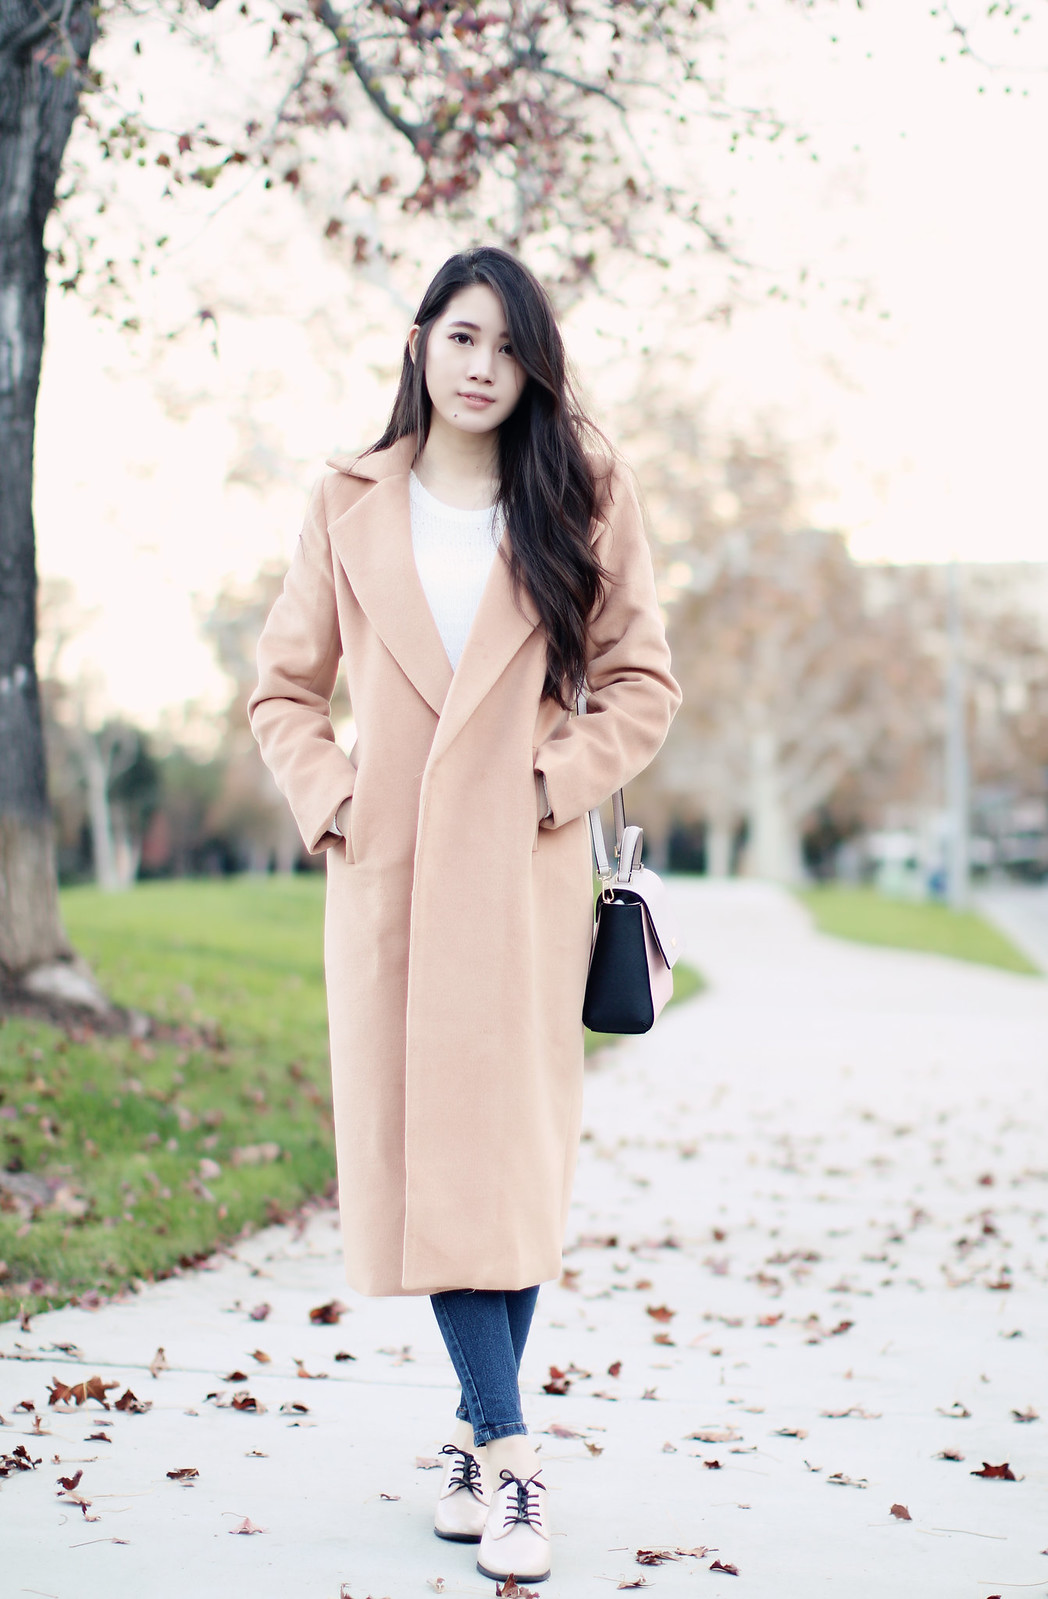 1428-ootd-fashion-fall-autumn-camel-coat-clothestoyouuu-elizabeeetht-chic-classic-timeless-koreanfashion